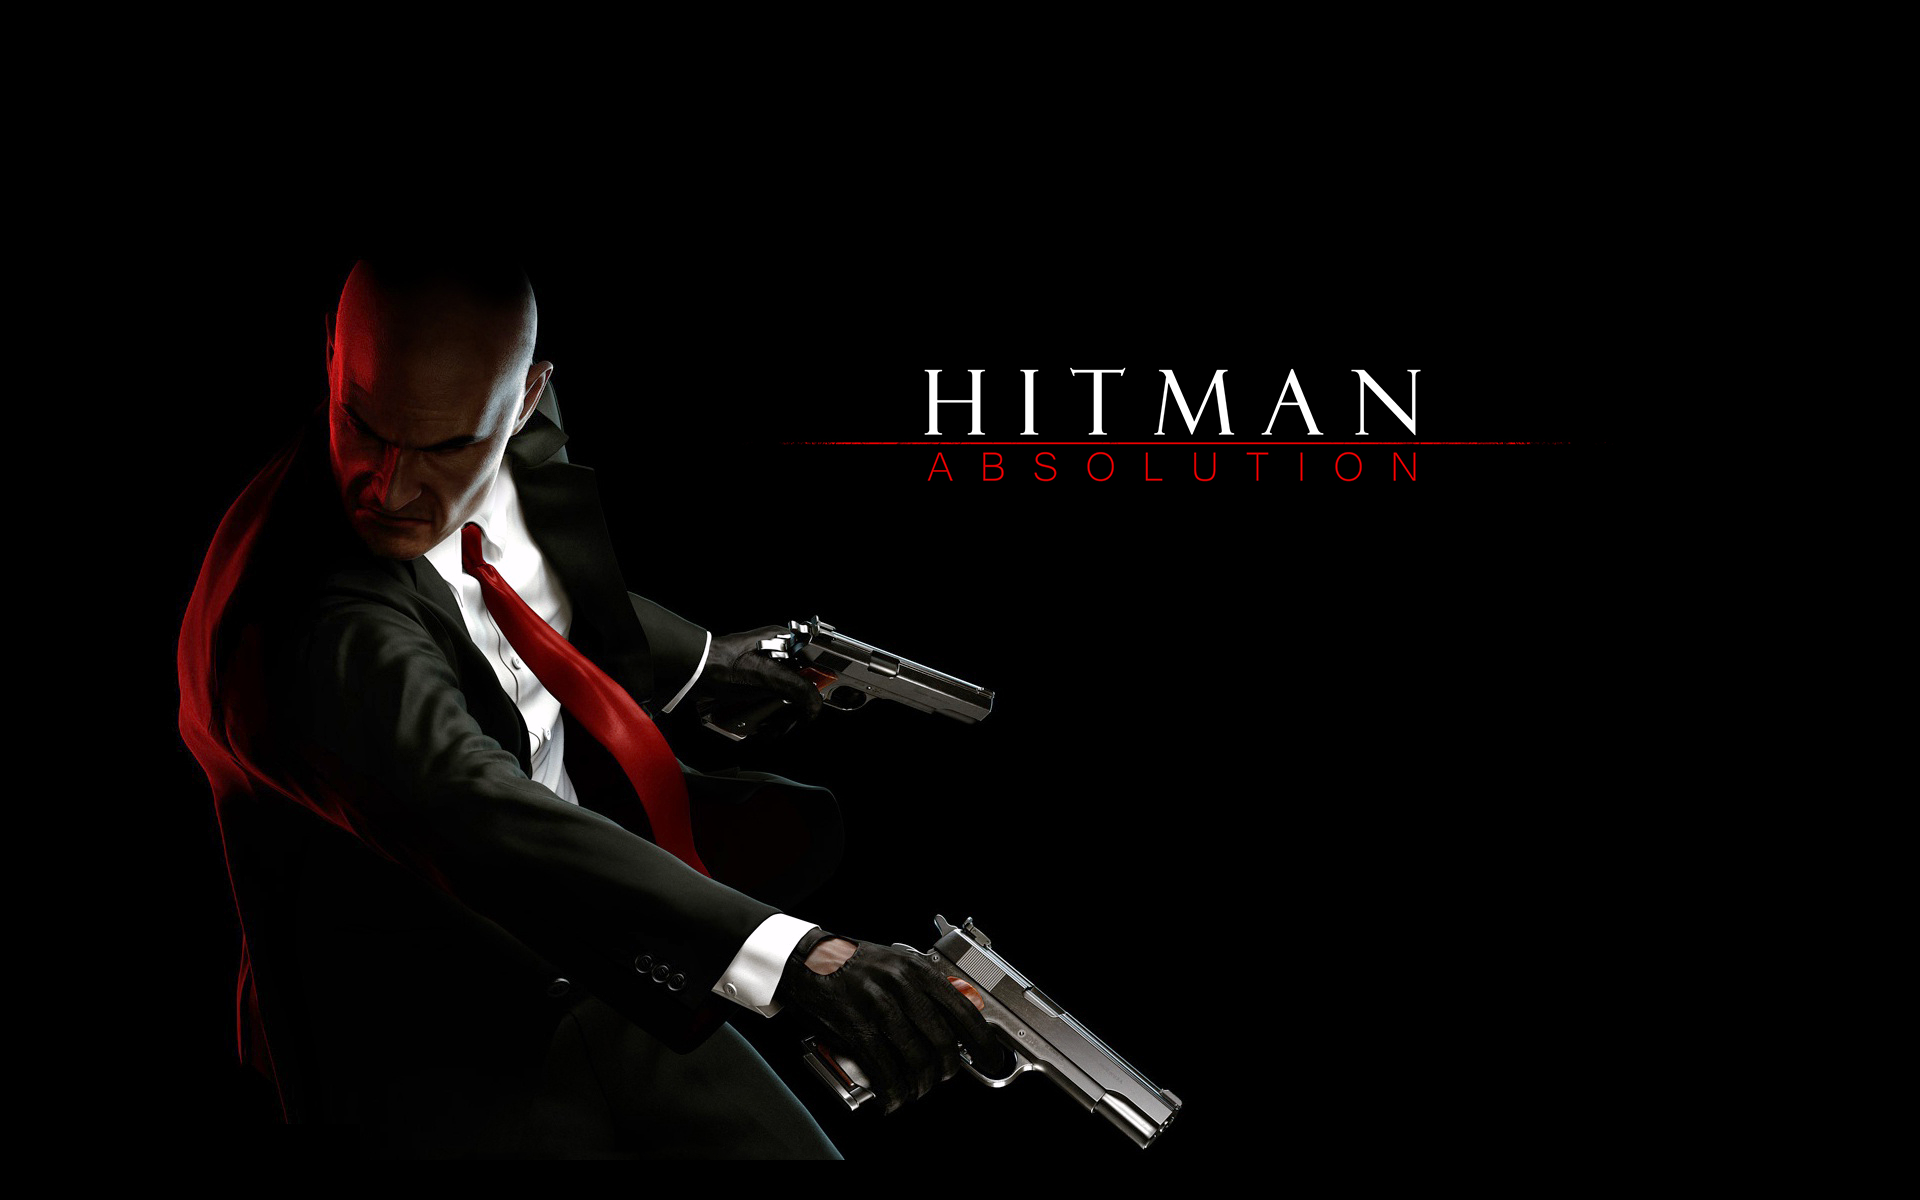 Free Download Hitman Absolution Wallpaper 1920x1200 For Your